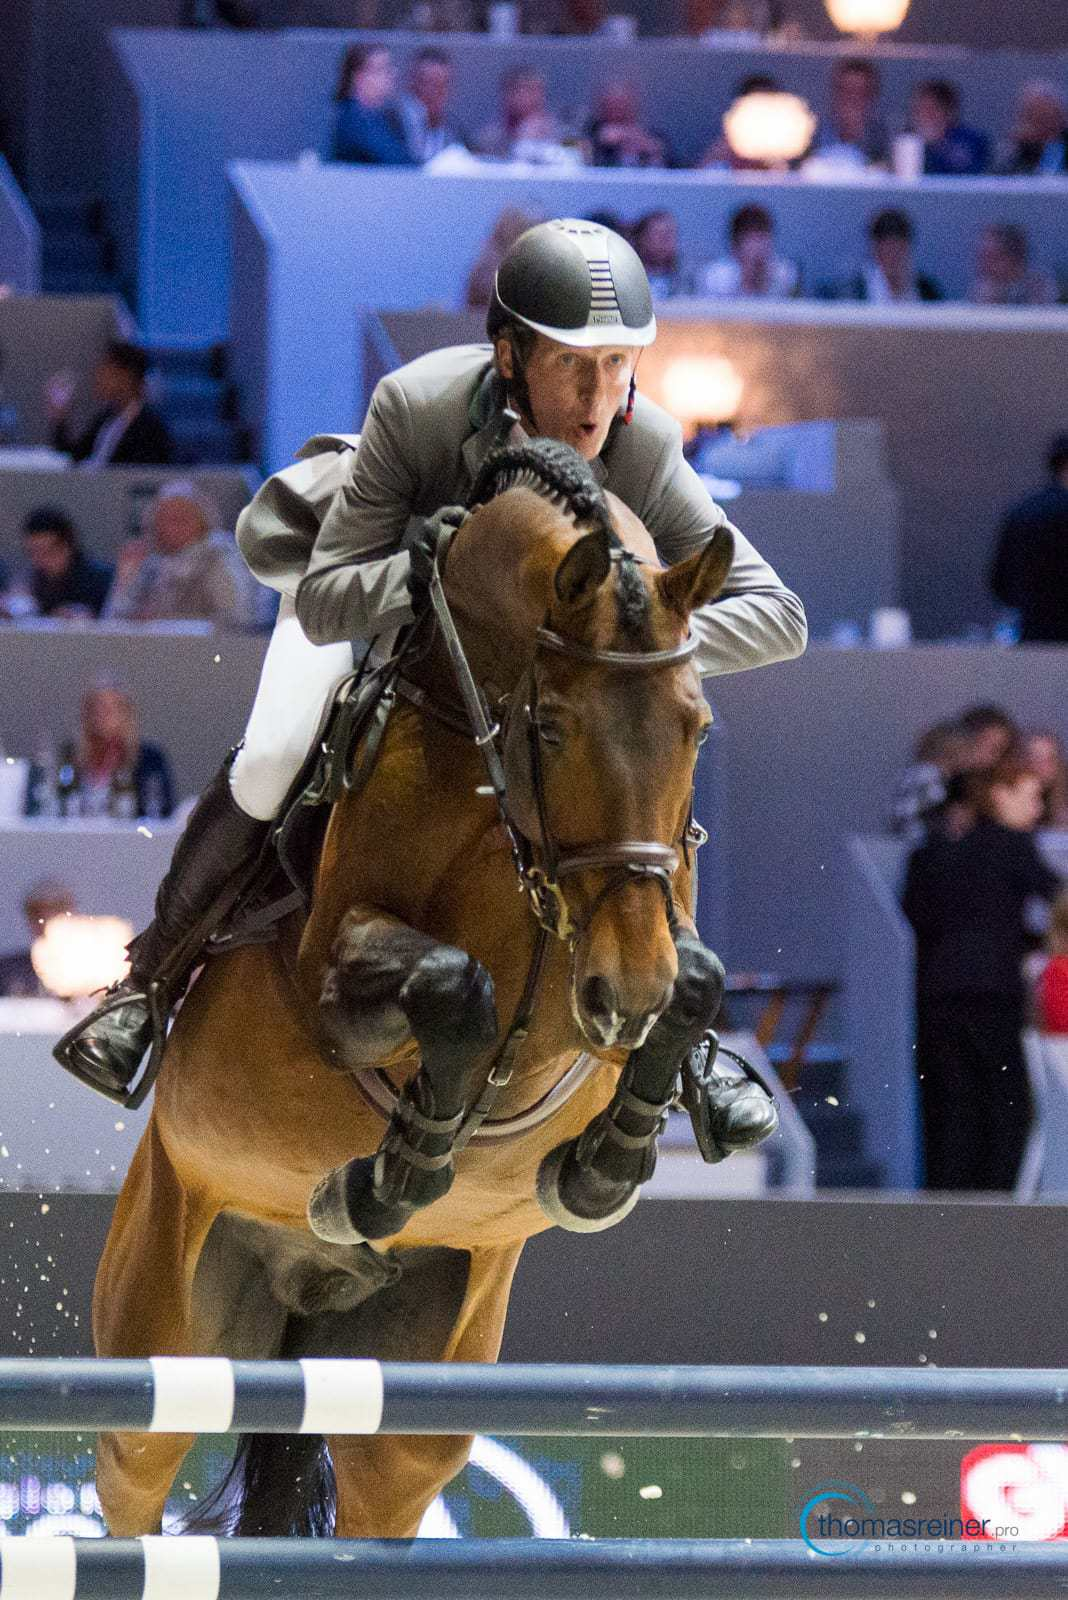 Chaman, airbus, grand prix, ludger beerbaum, lyon 2014, worldcup final